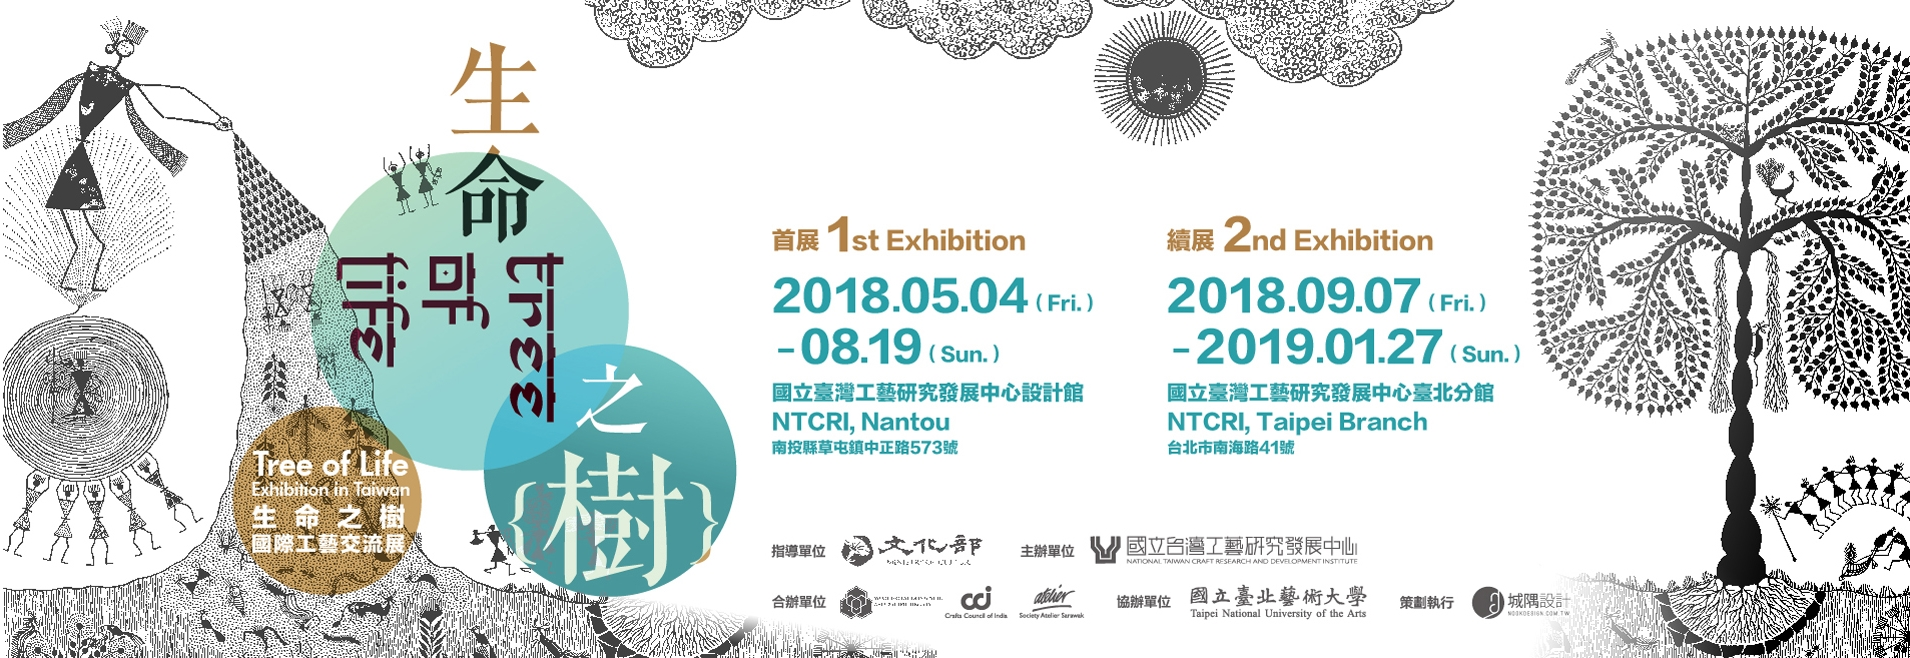 Tree of Life Exhibition in Taiwan[另開新視窗]